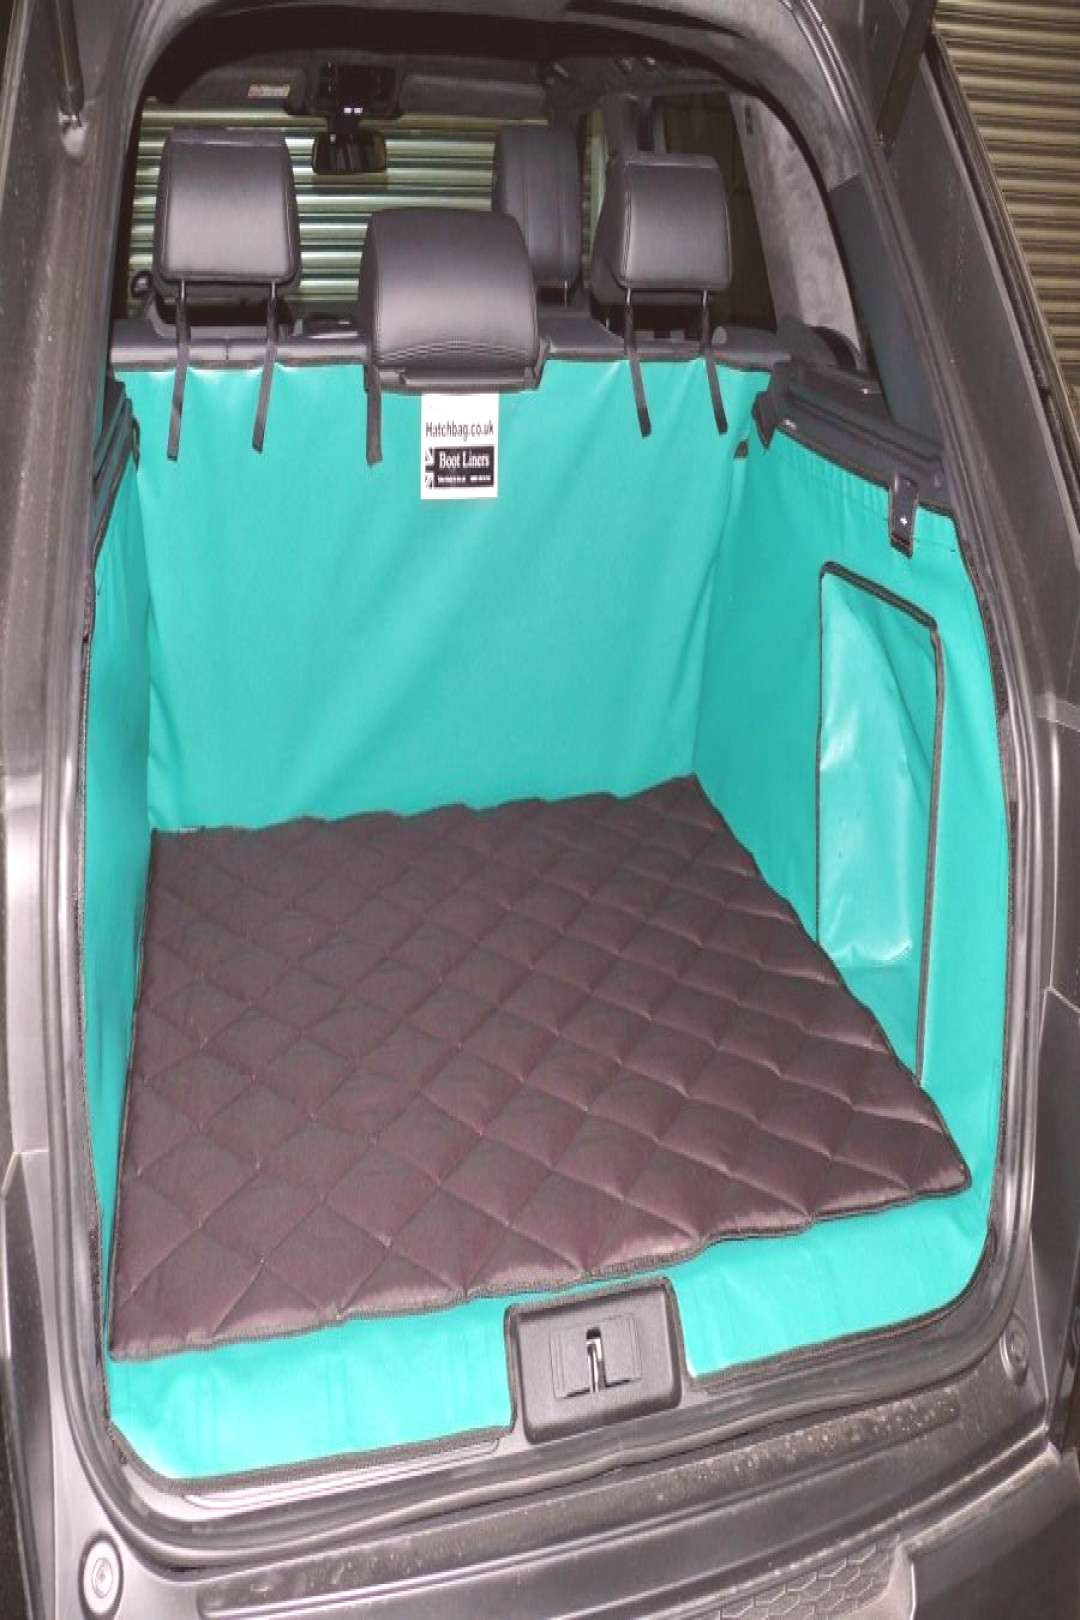 Its inevitable that dogs get smelly especially when they get wet. Hatchbag have developed a quilted